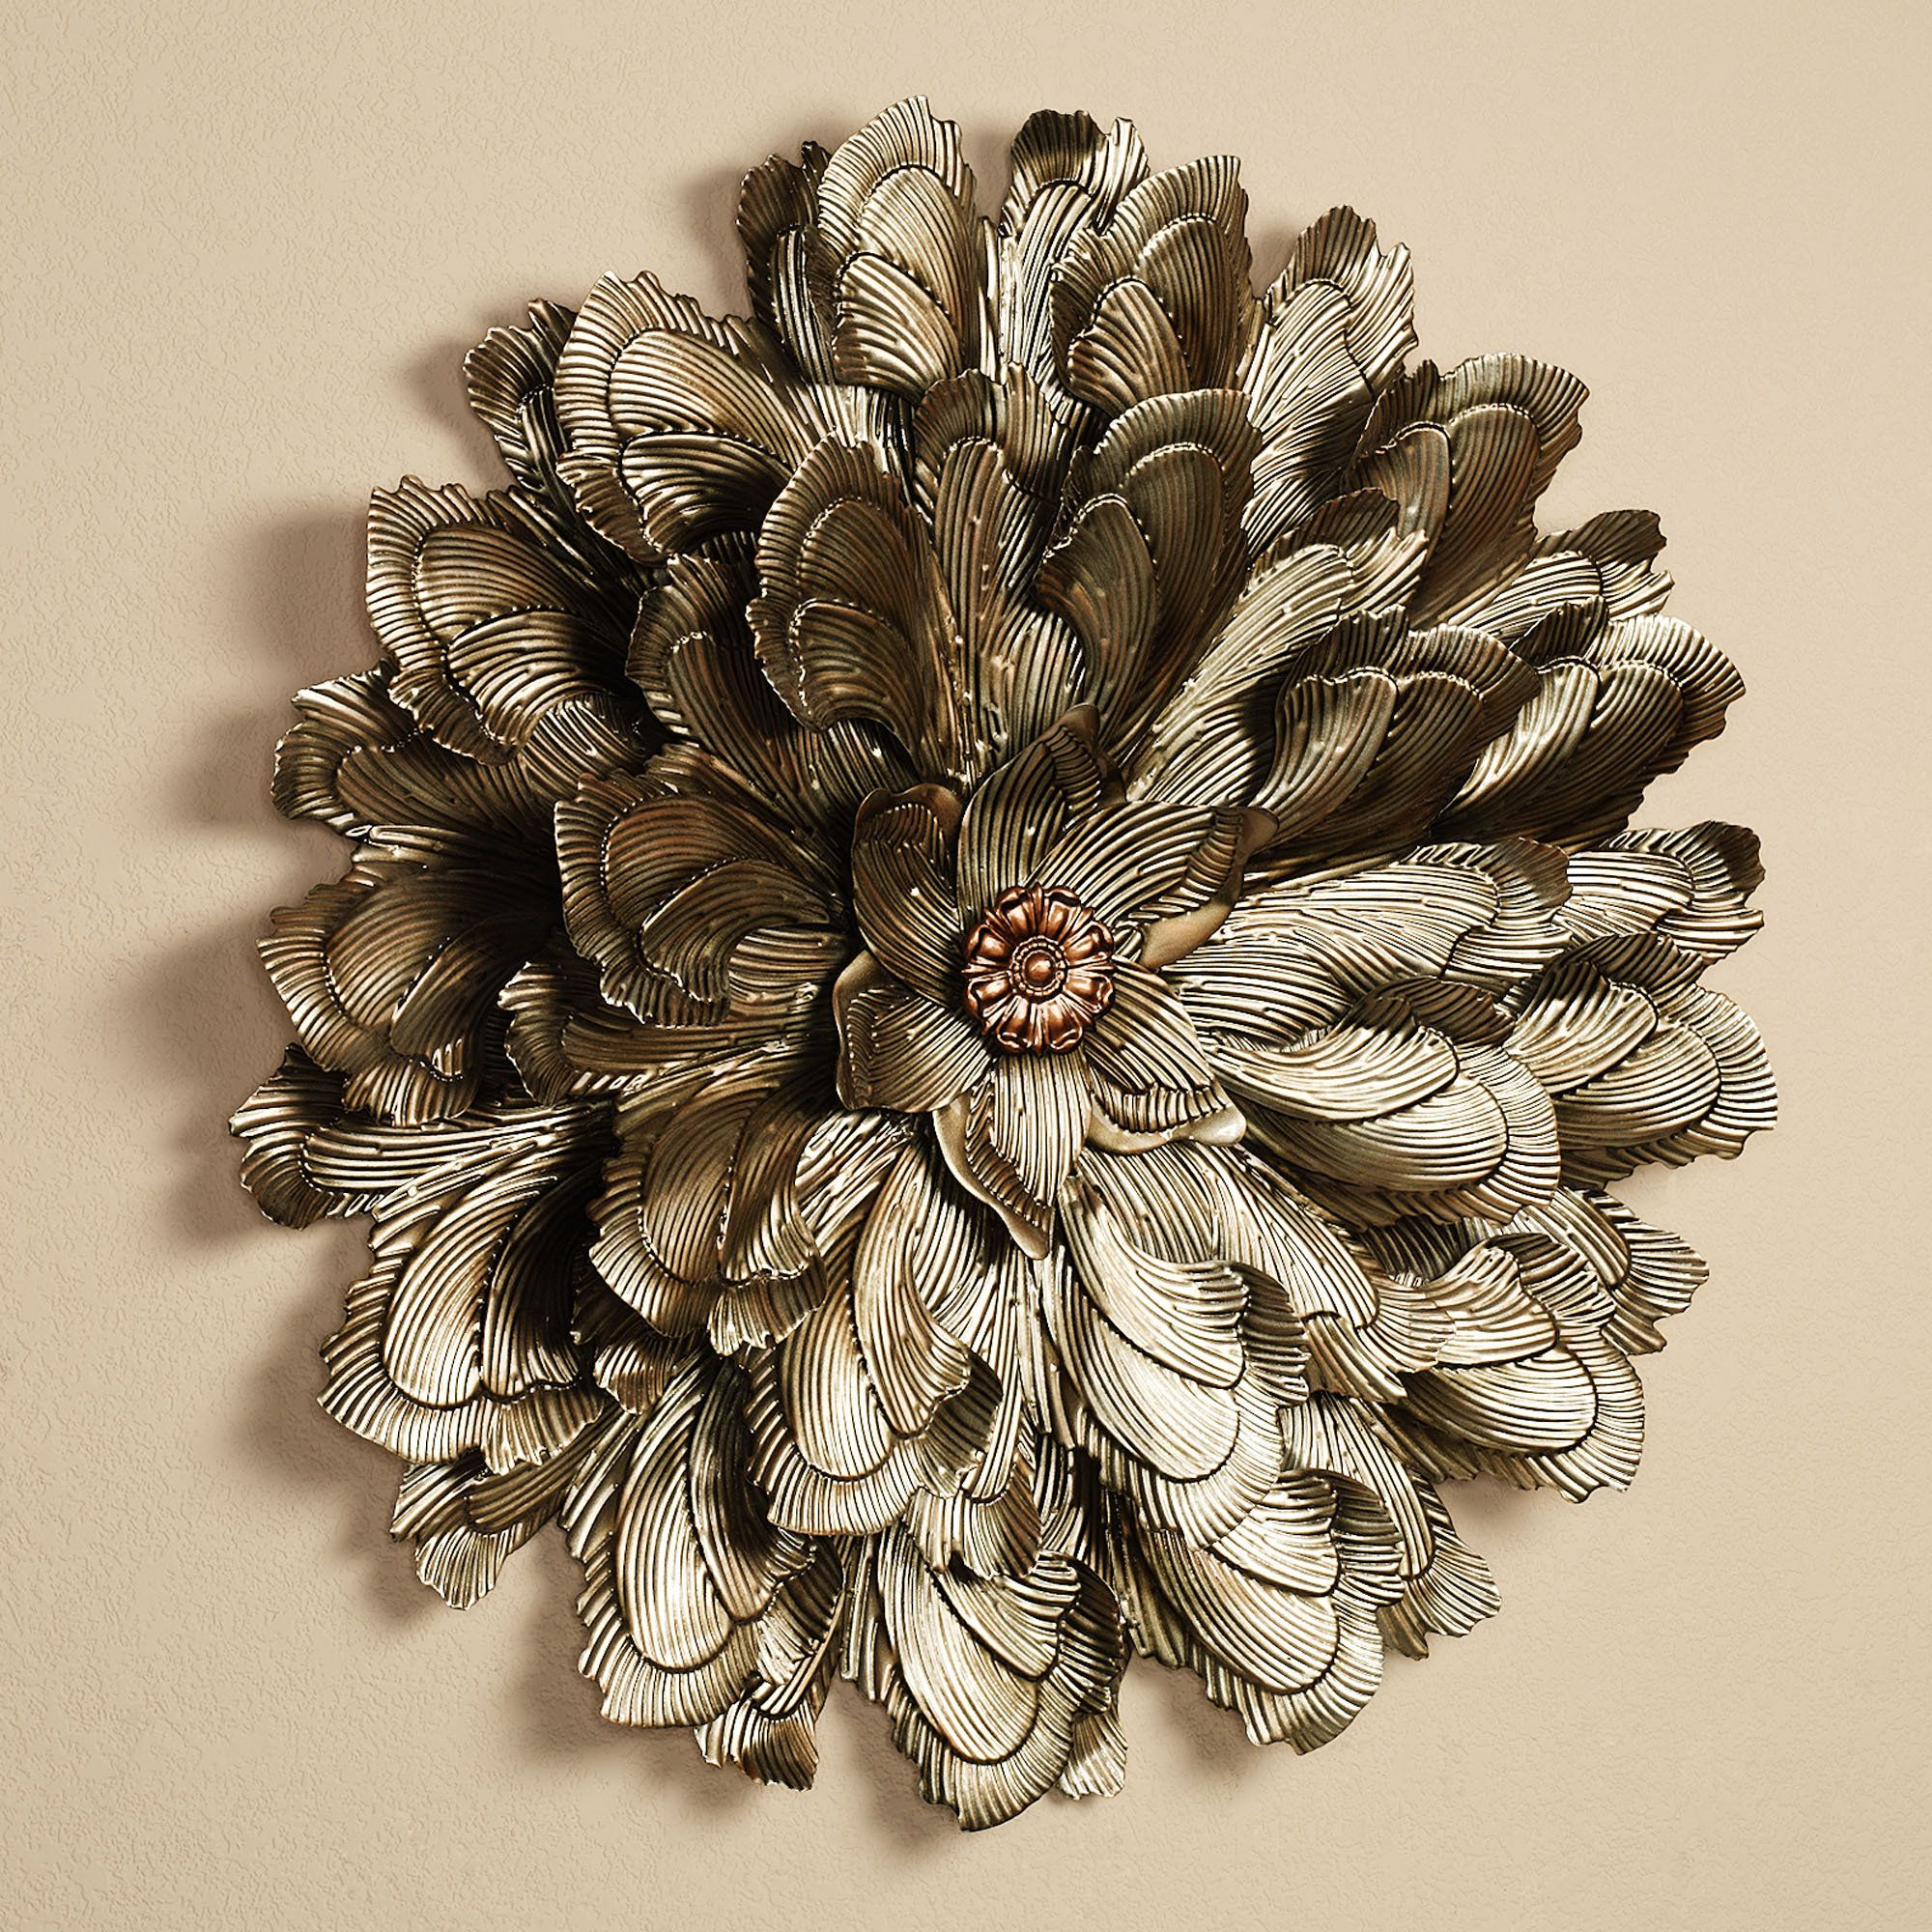 Metal Flower Wall Art delicate flower blossom metal wall sculpture | sculpture, floral